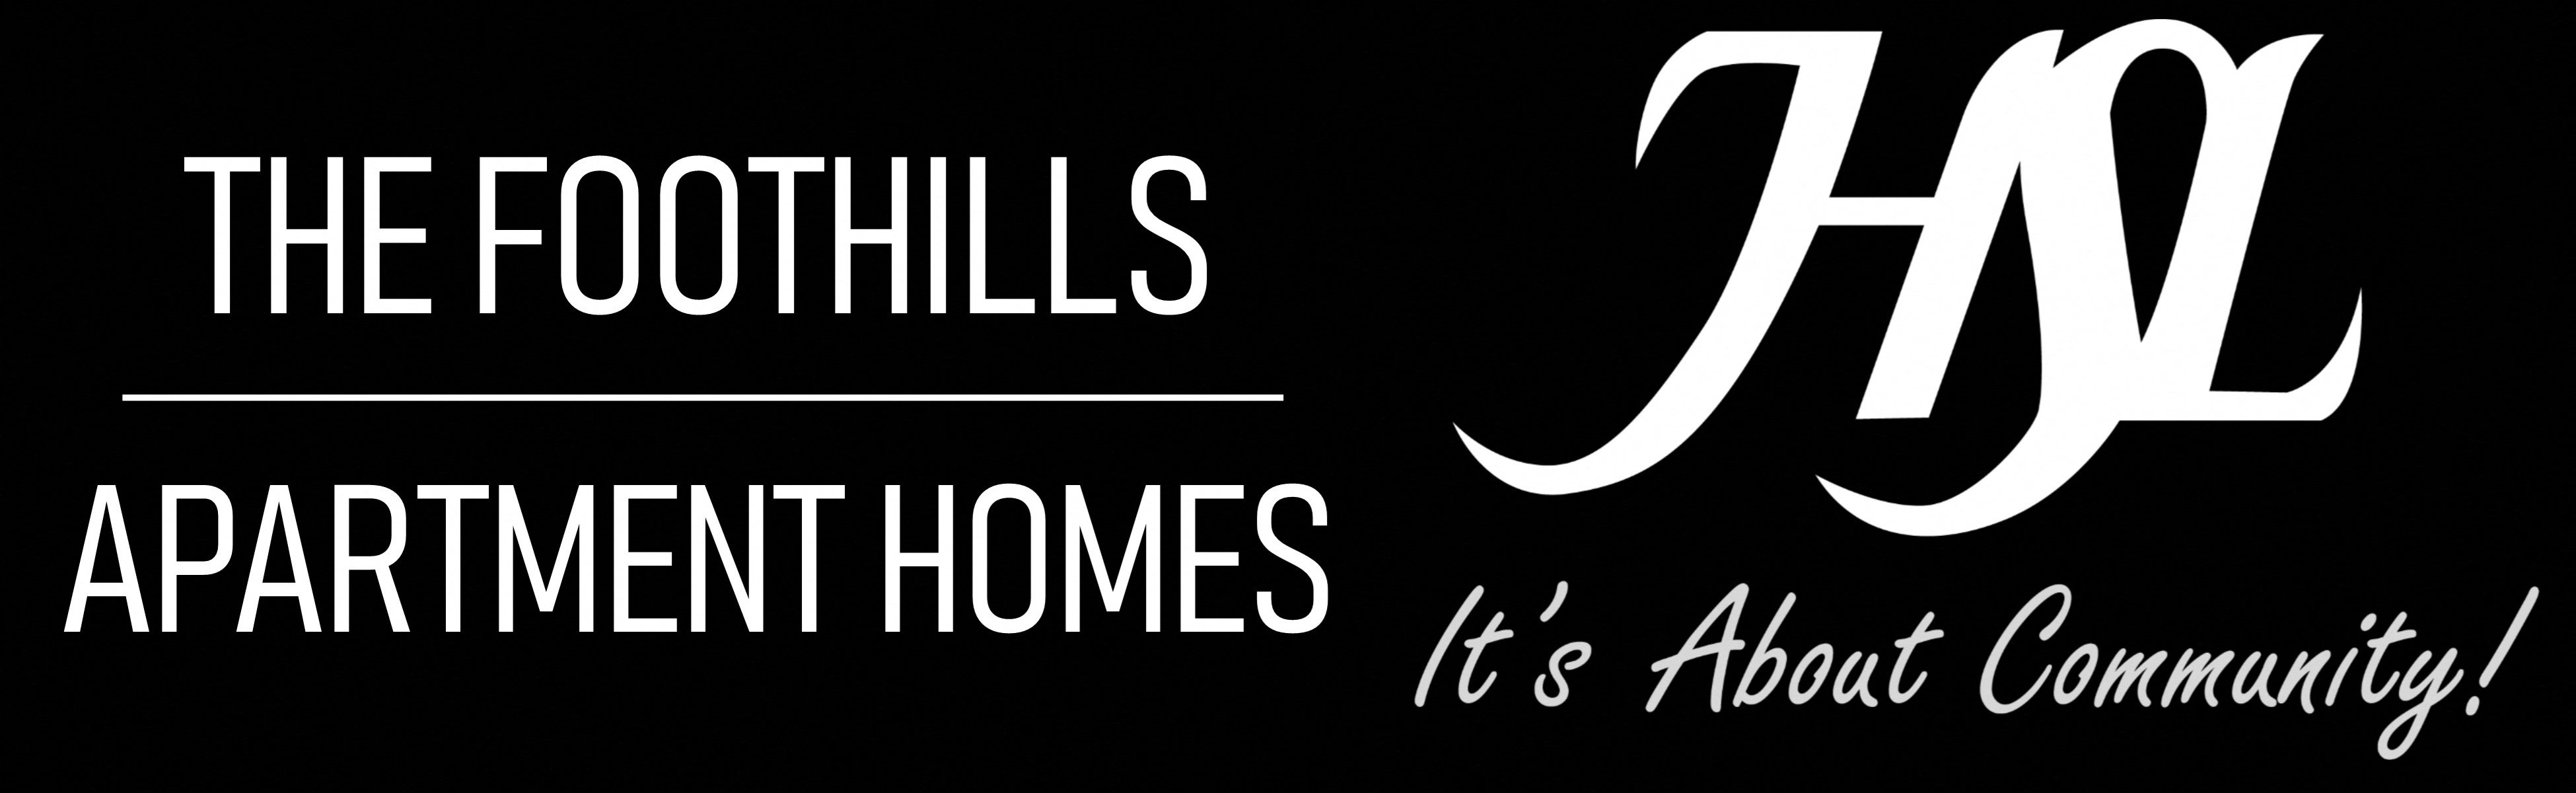 Foothills Apartment Homes Logo